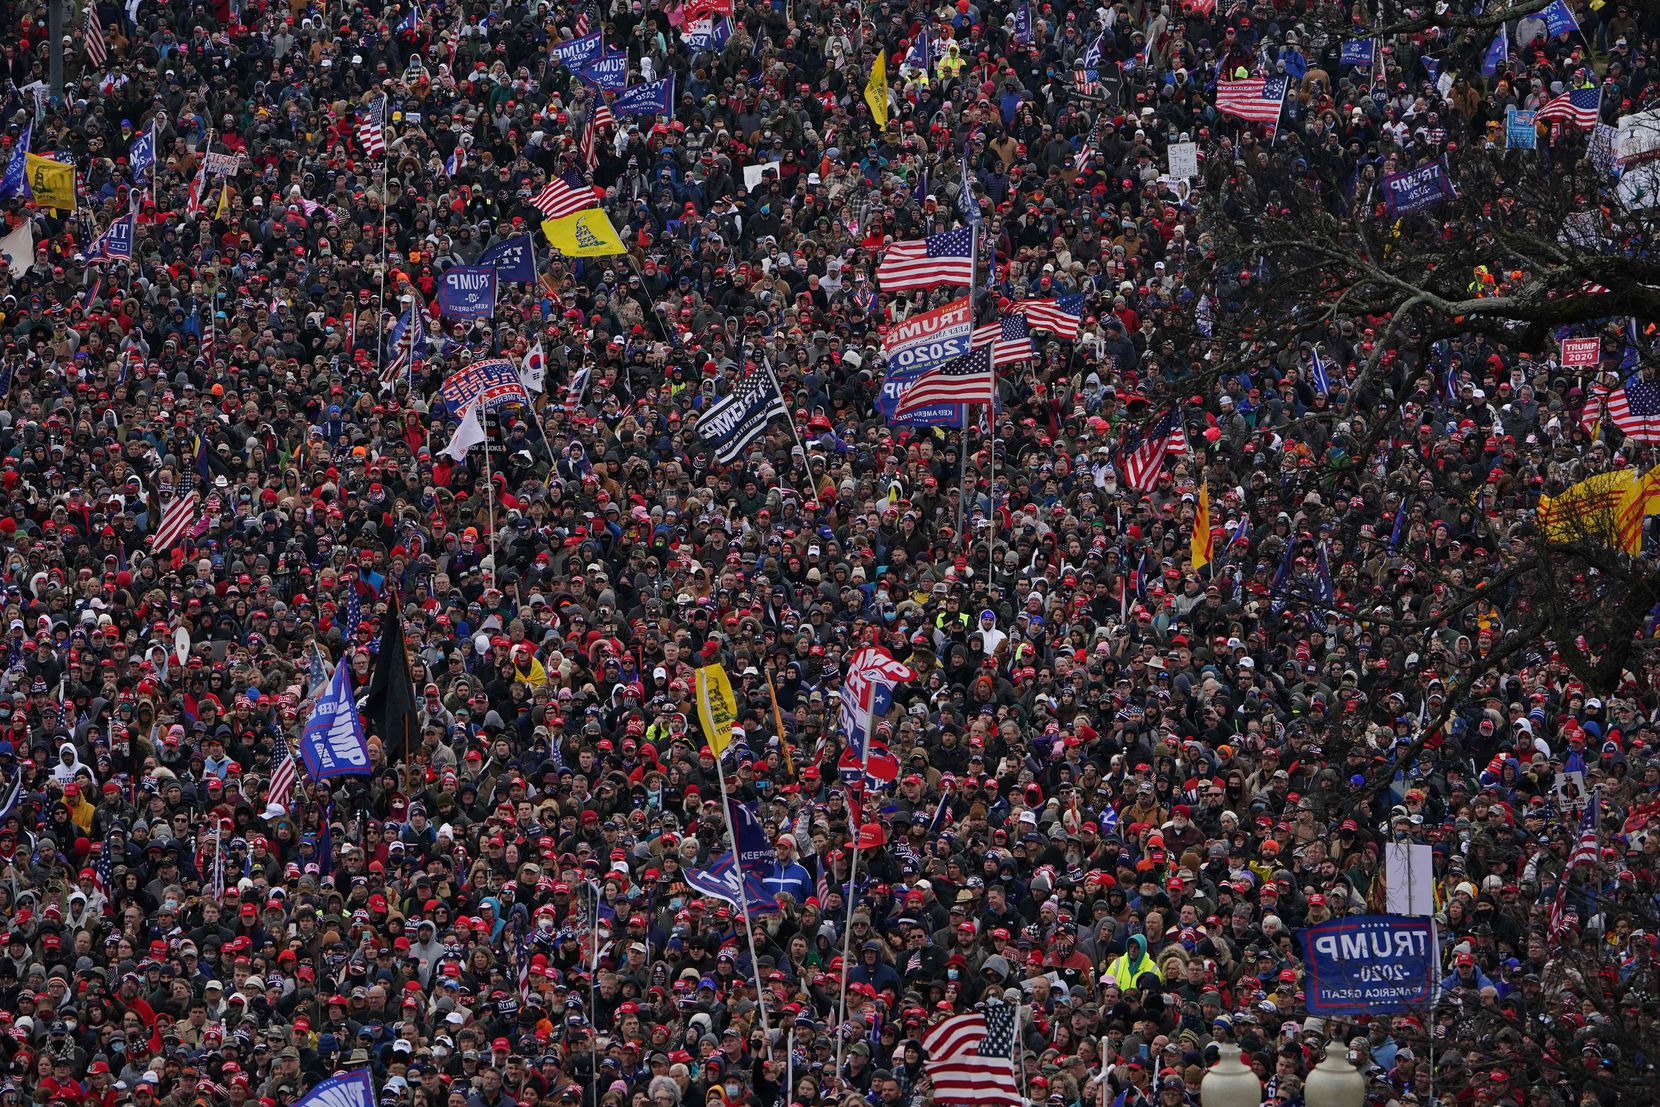 TOPSHOT - Supporters of US President Donald Trump demonstrate on the National Mall on January 6, 2021, in Washington, DC. - Demonstrators across Washington are protesting the 2020 presidential election Electoral Vote Certification by the US Congress.